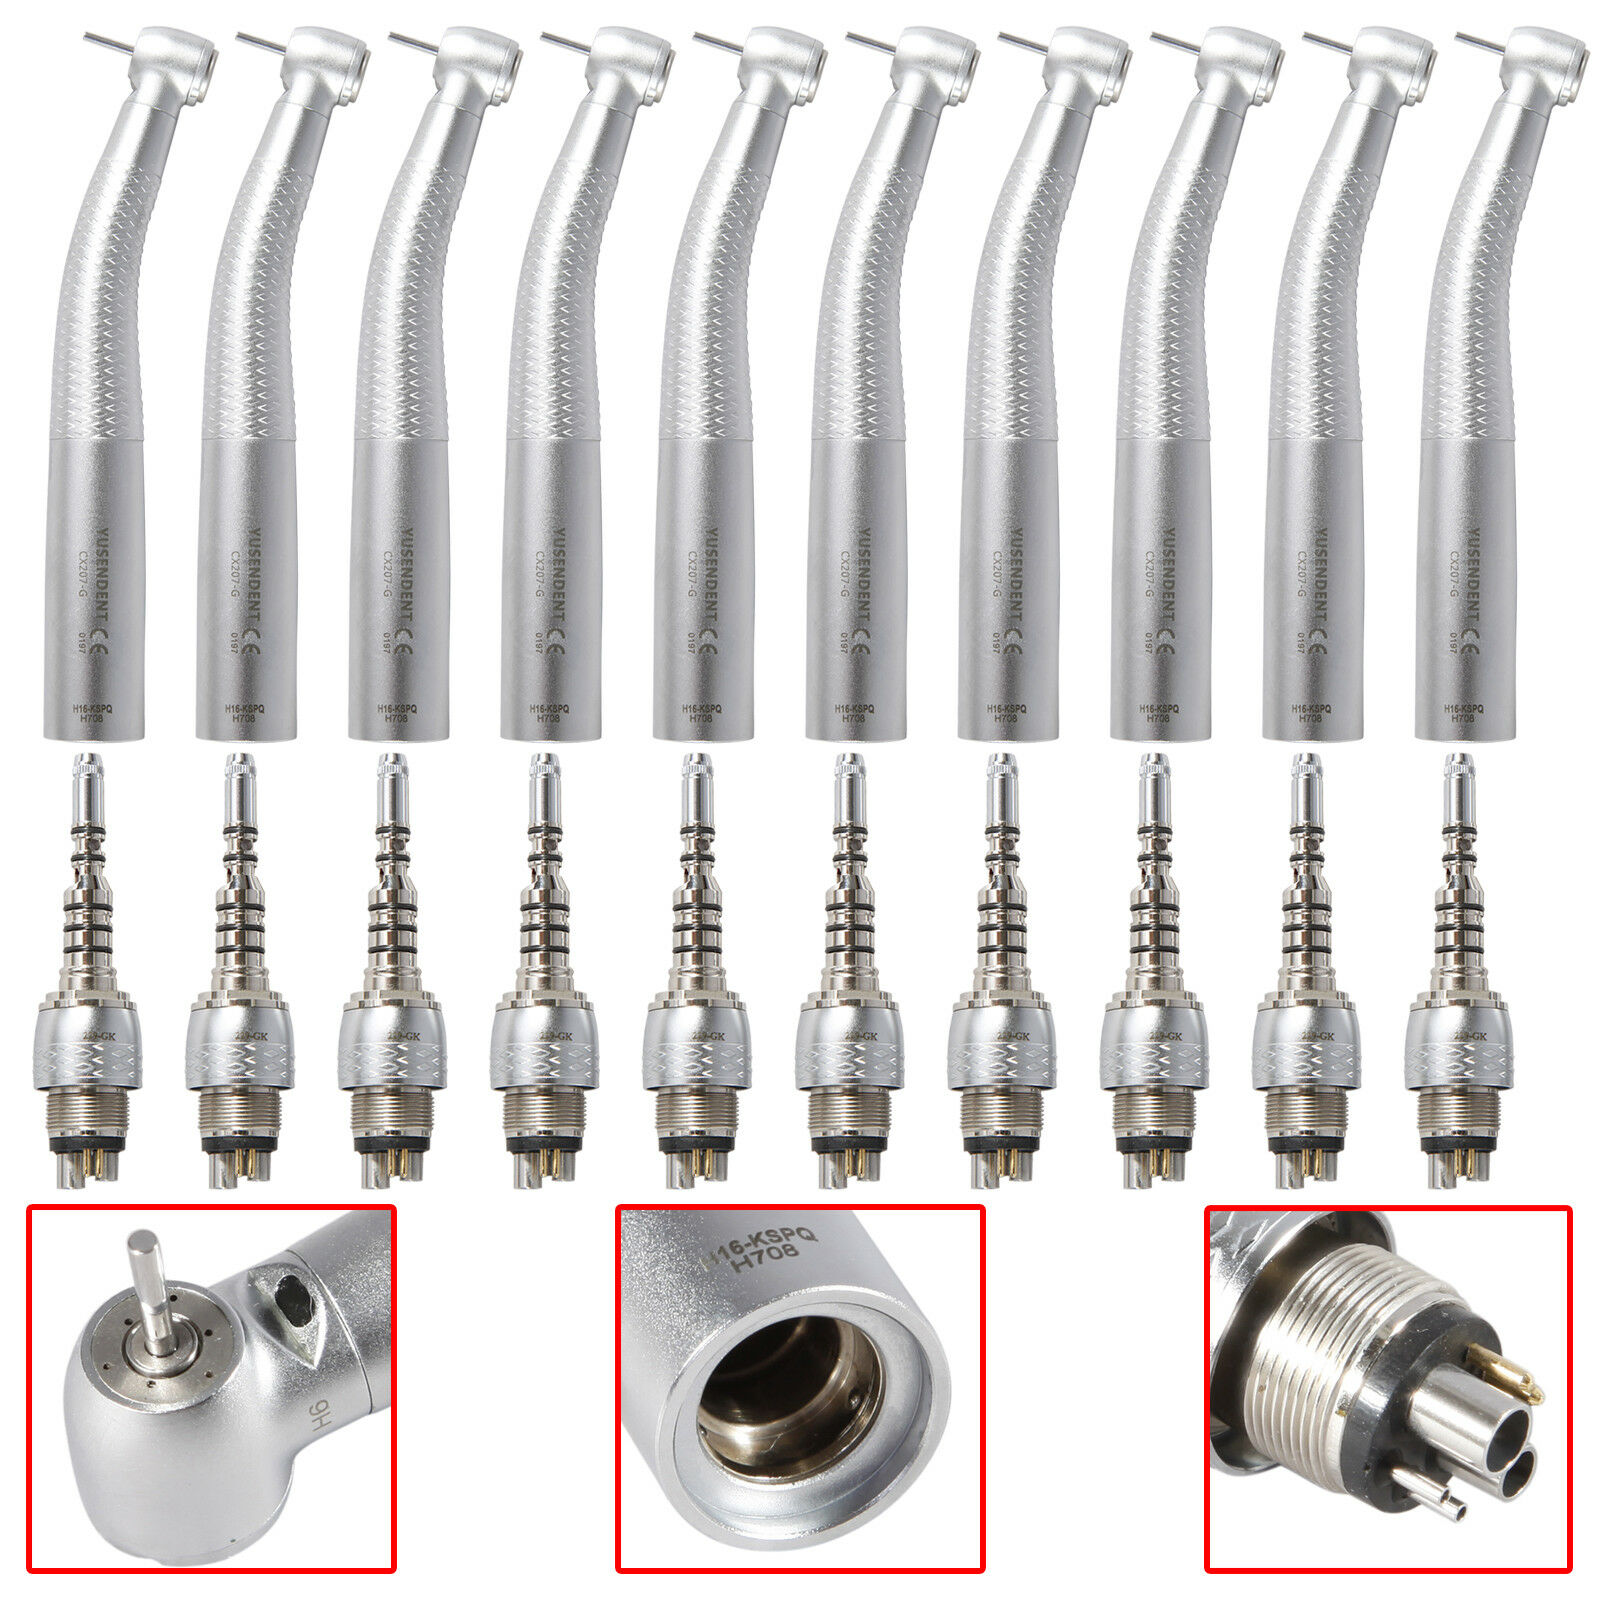 10X YUSENDENT Dental Fiber Optic Handpiece W/ KAVO Multiflex Quick Coupling -GK